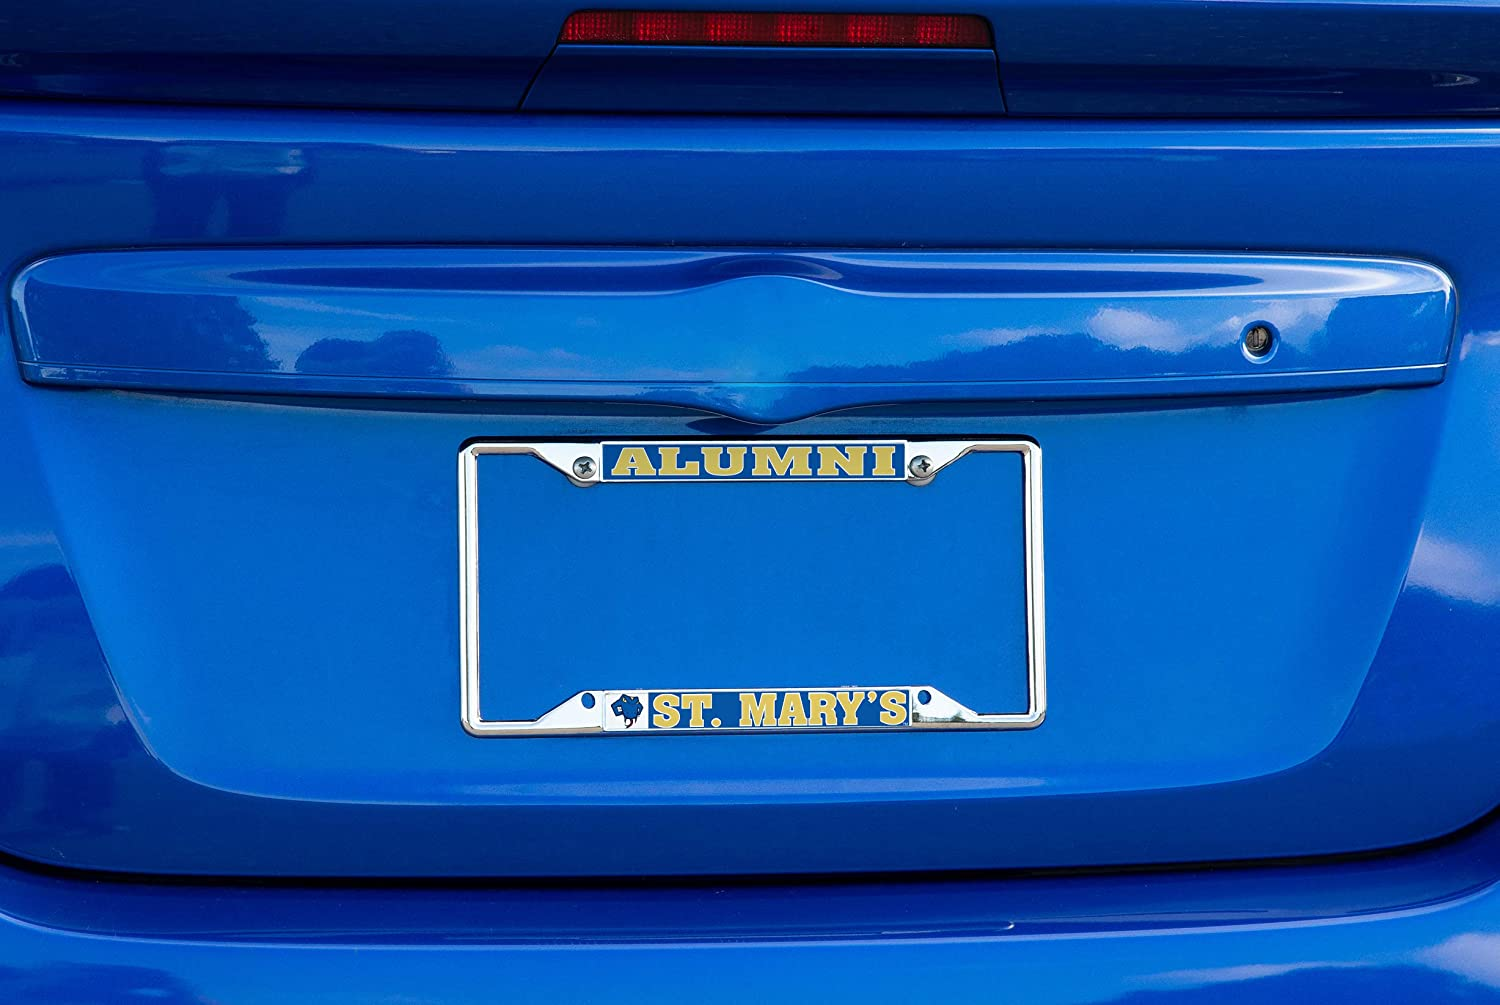 TX Texas Rattlers NCAA Metal License Plate Frame for Front Back of Car Officially Licensed Alumni Marys University Desert Cactus St